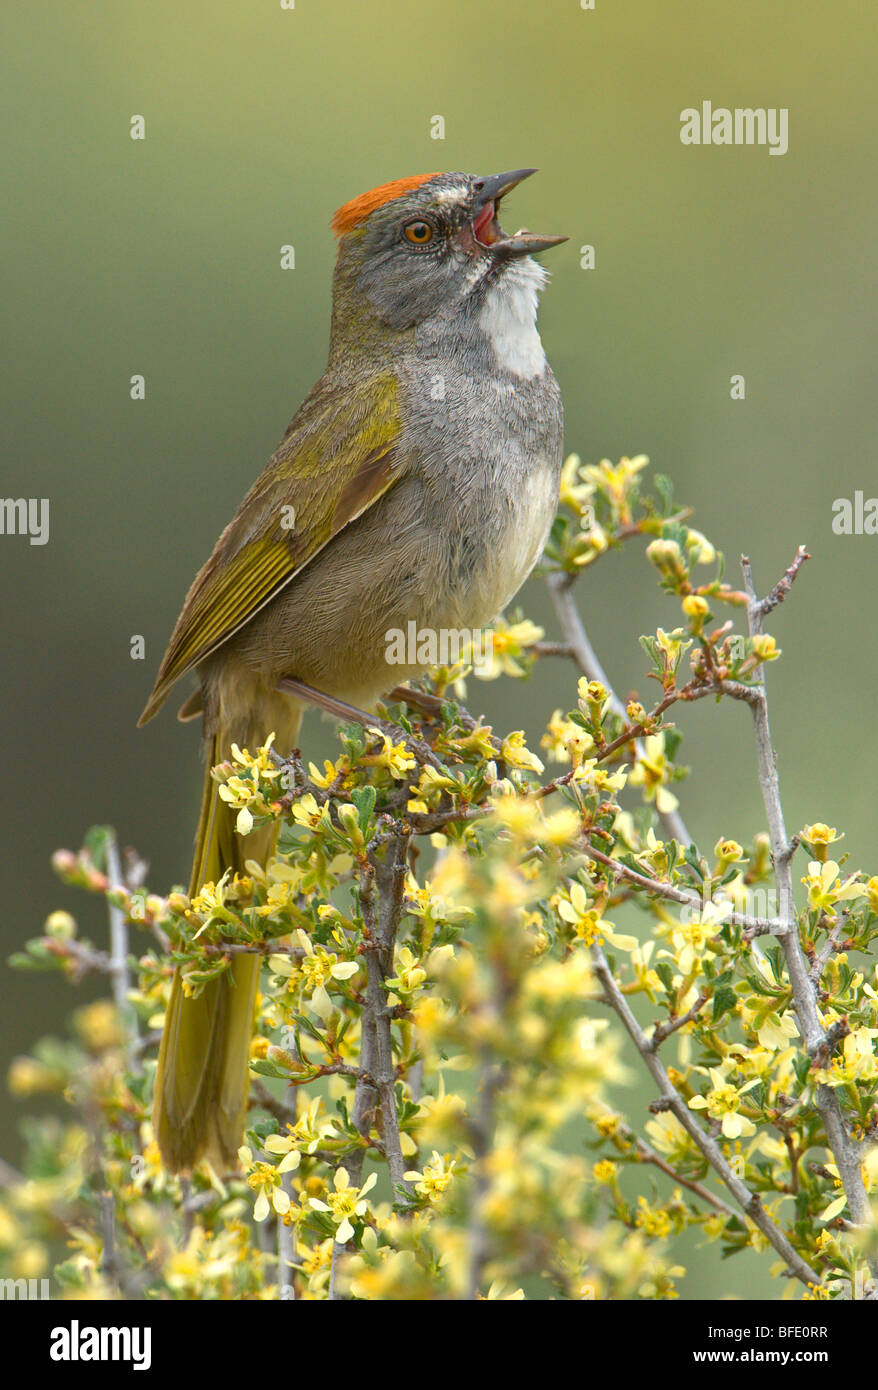 Green-tailed towhee (Pipilo chlorurus) singing while perched on branch in Deschutes National Forest, Oregon, USA Stock Photo